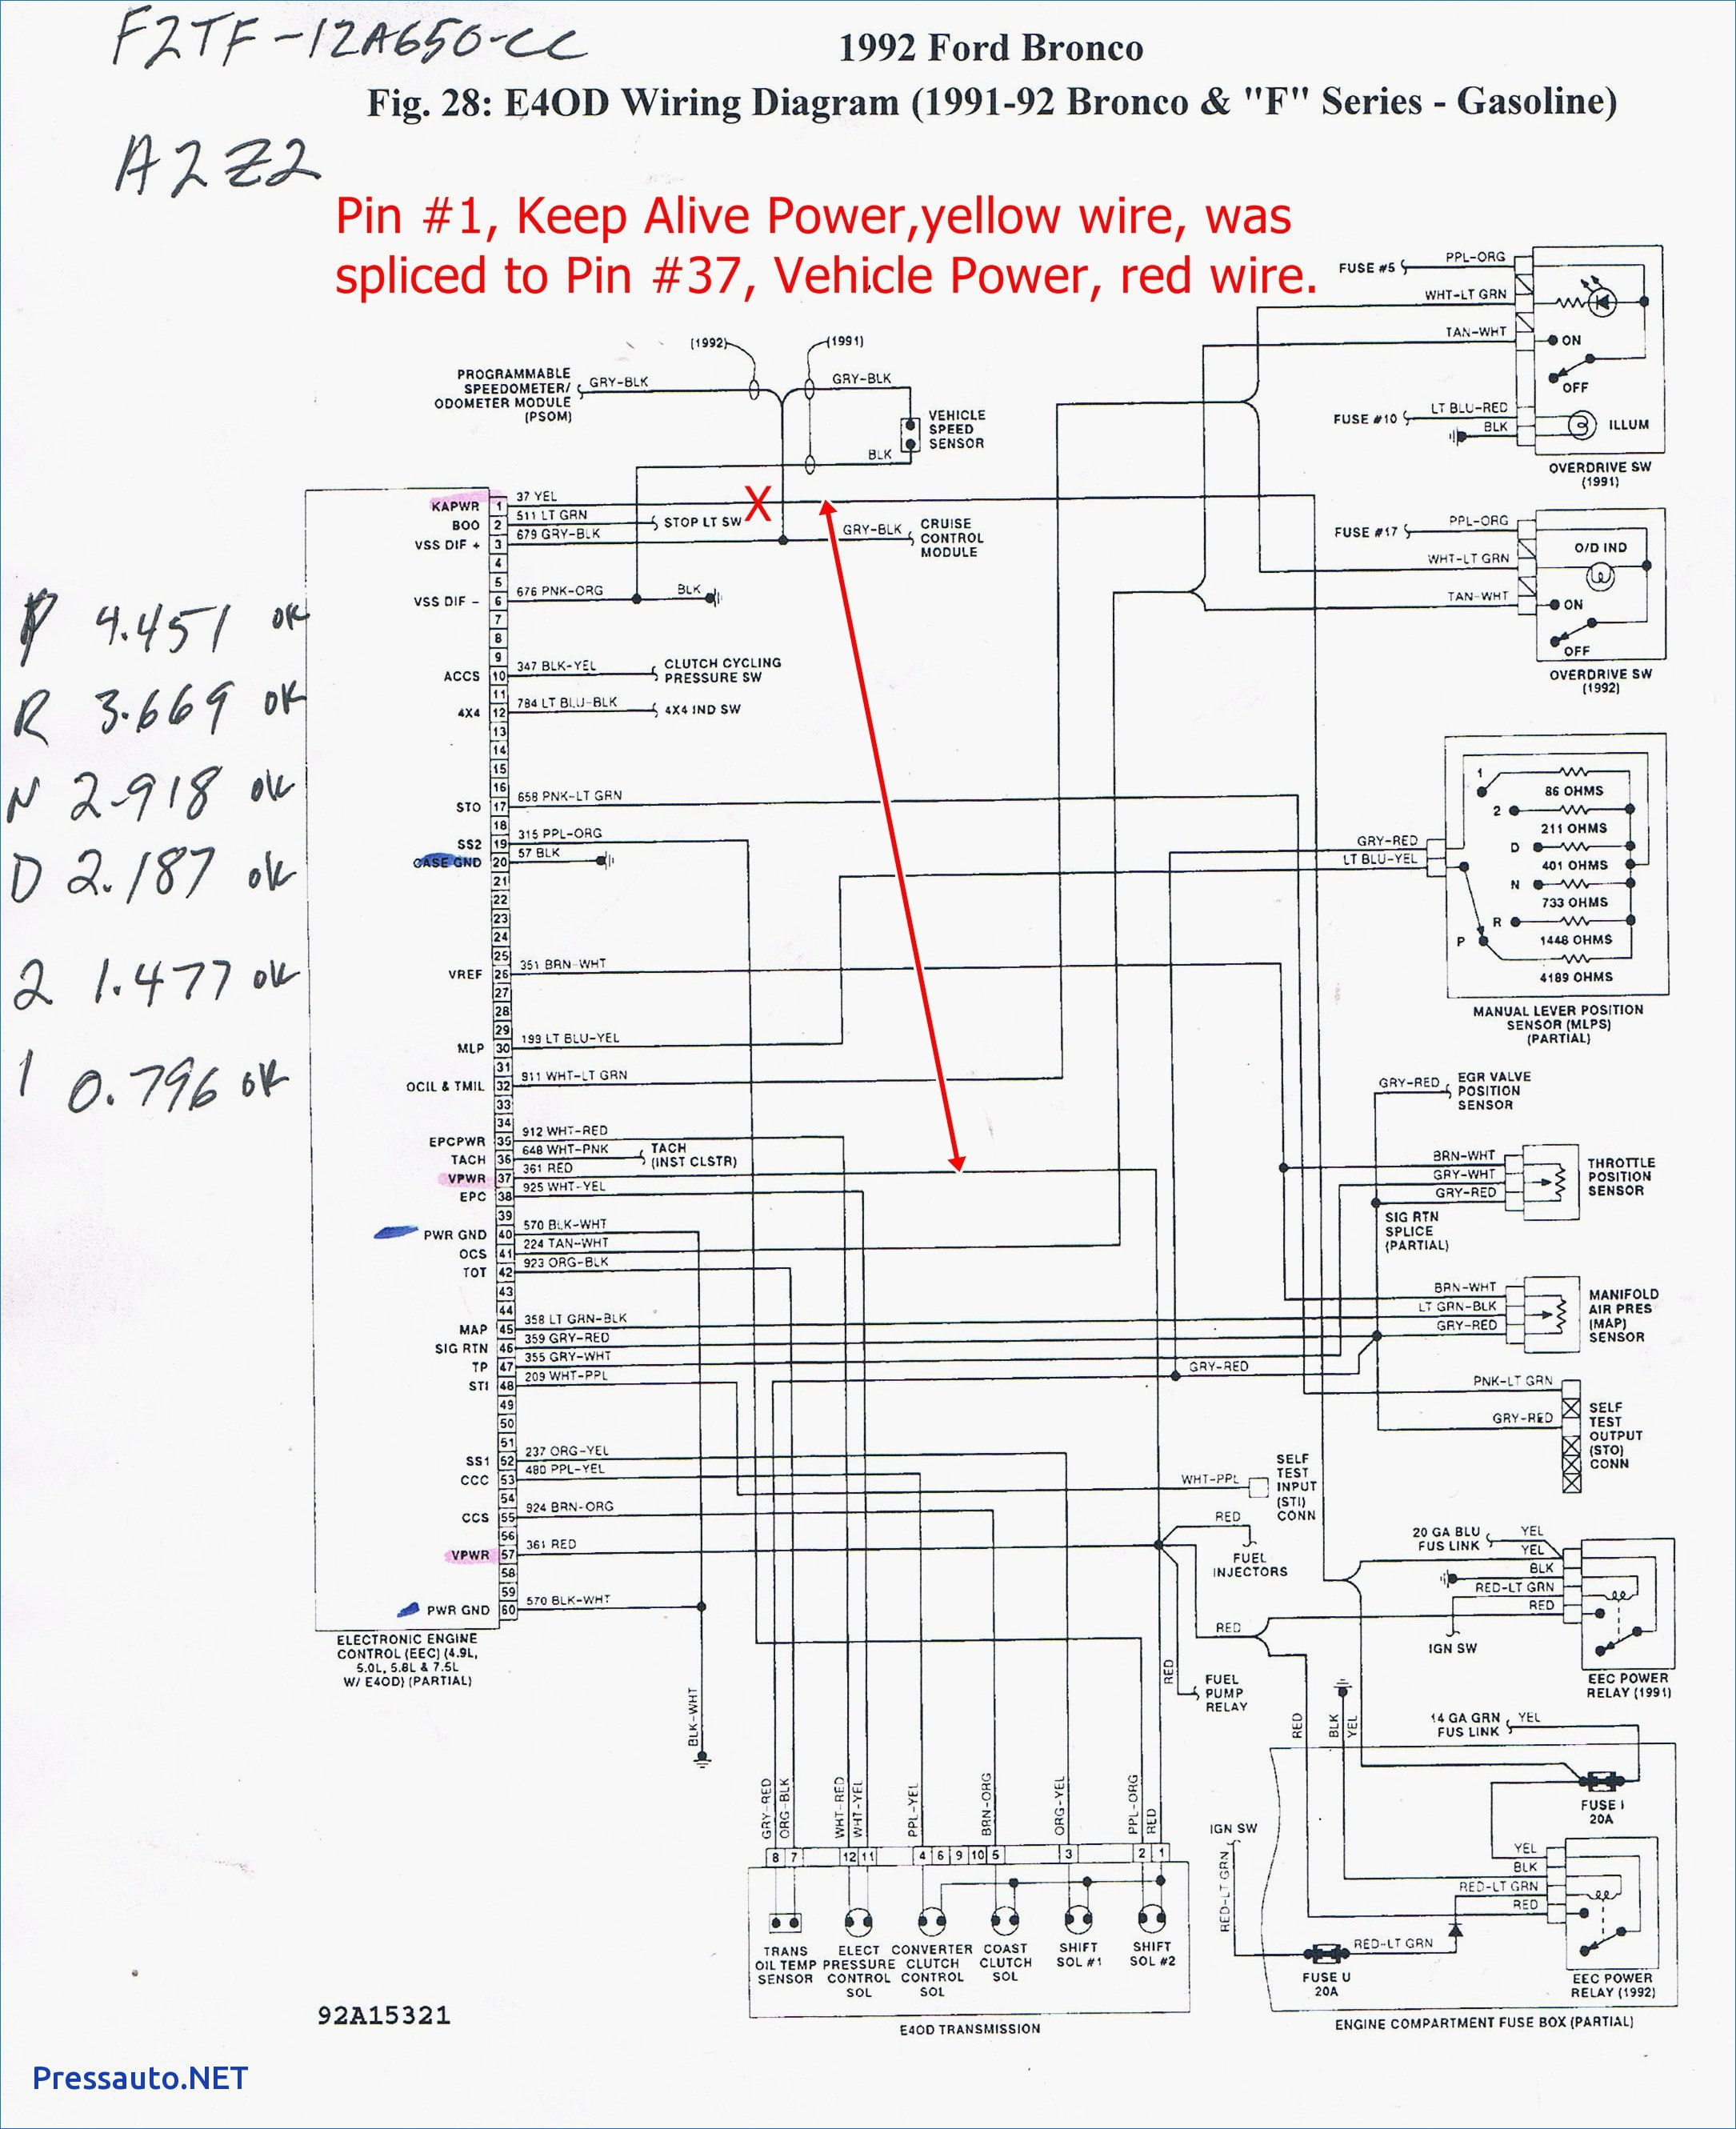 2017 ford f550 pto wiring diagram Download-2017 ford F550 Pto Wiring Diagram Valid 2017 ford F550 Pto Wiring Diagram New astonishing 2002 12-j